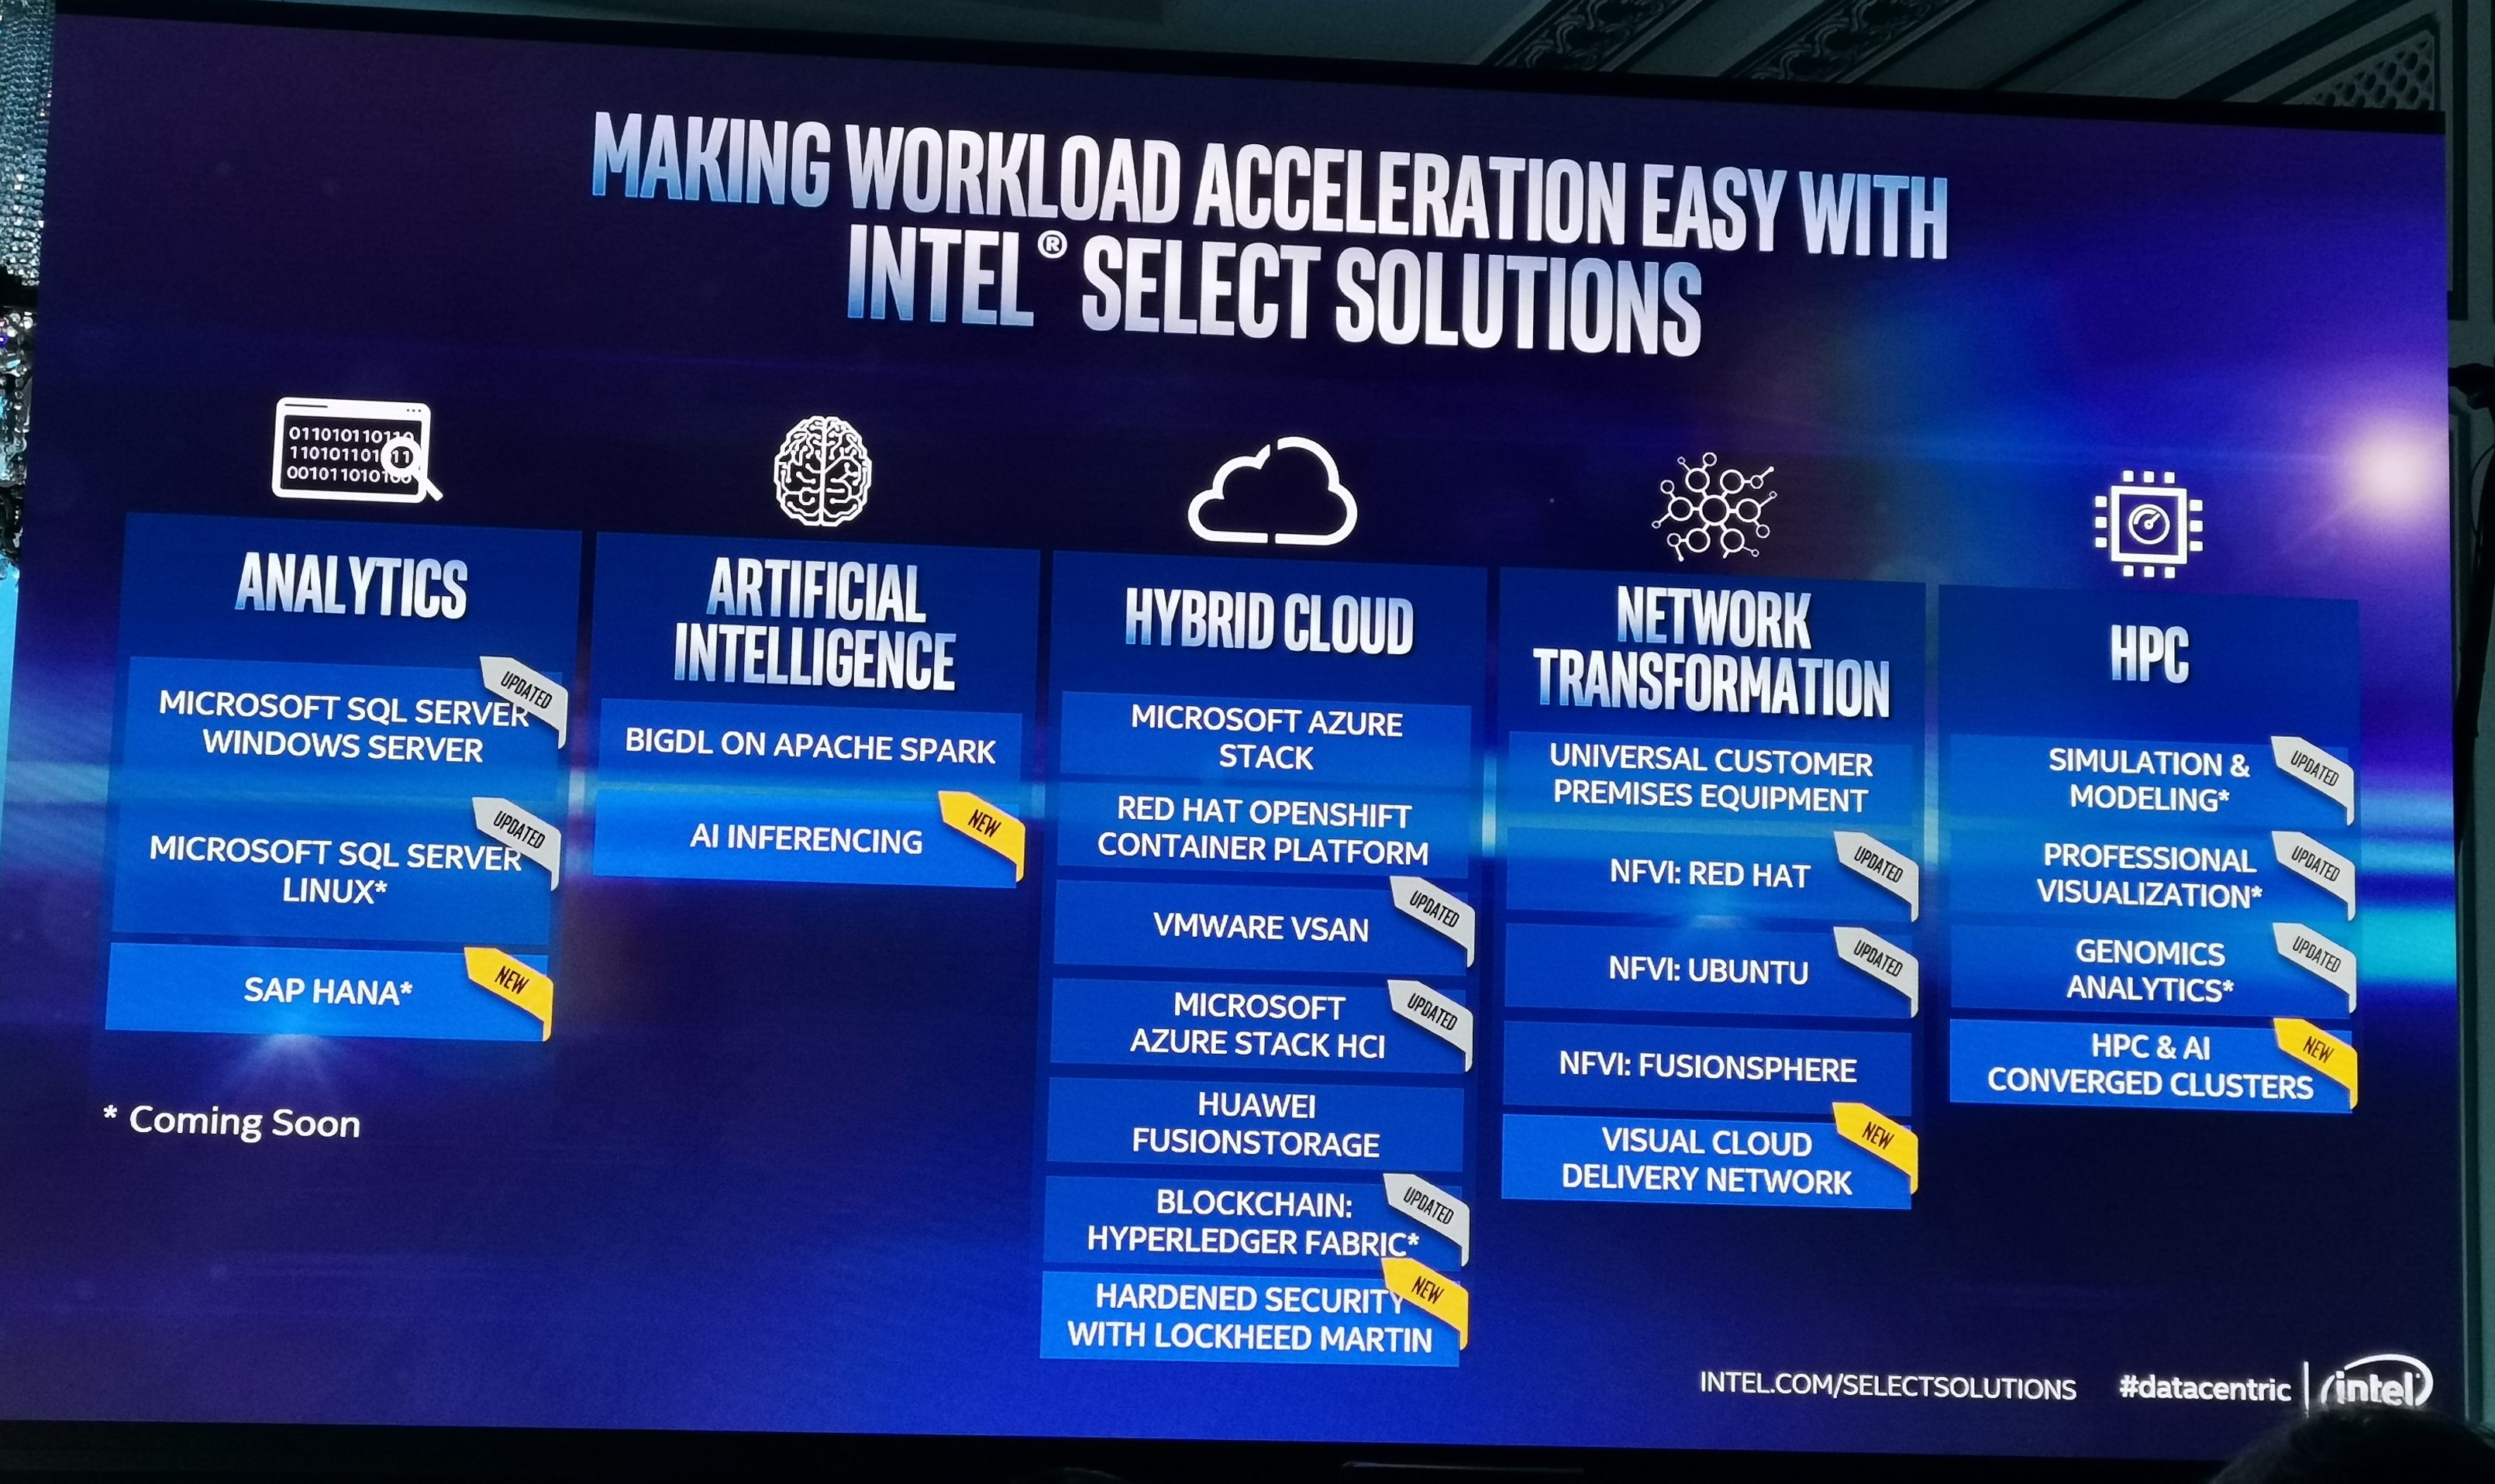 Intel Select Solutions - categories